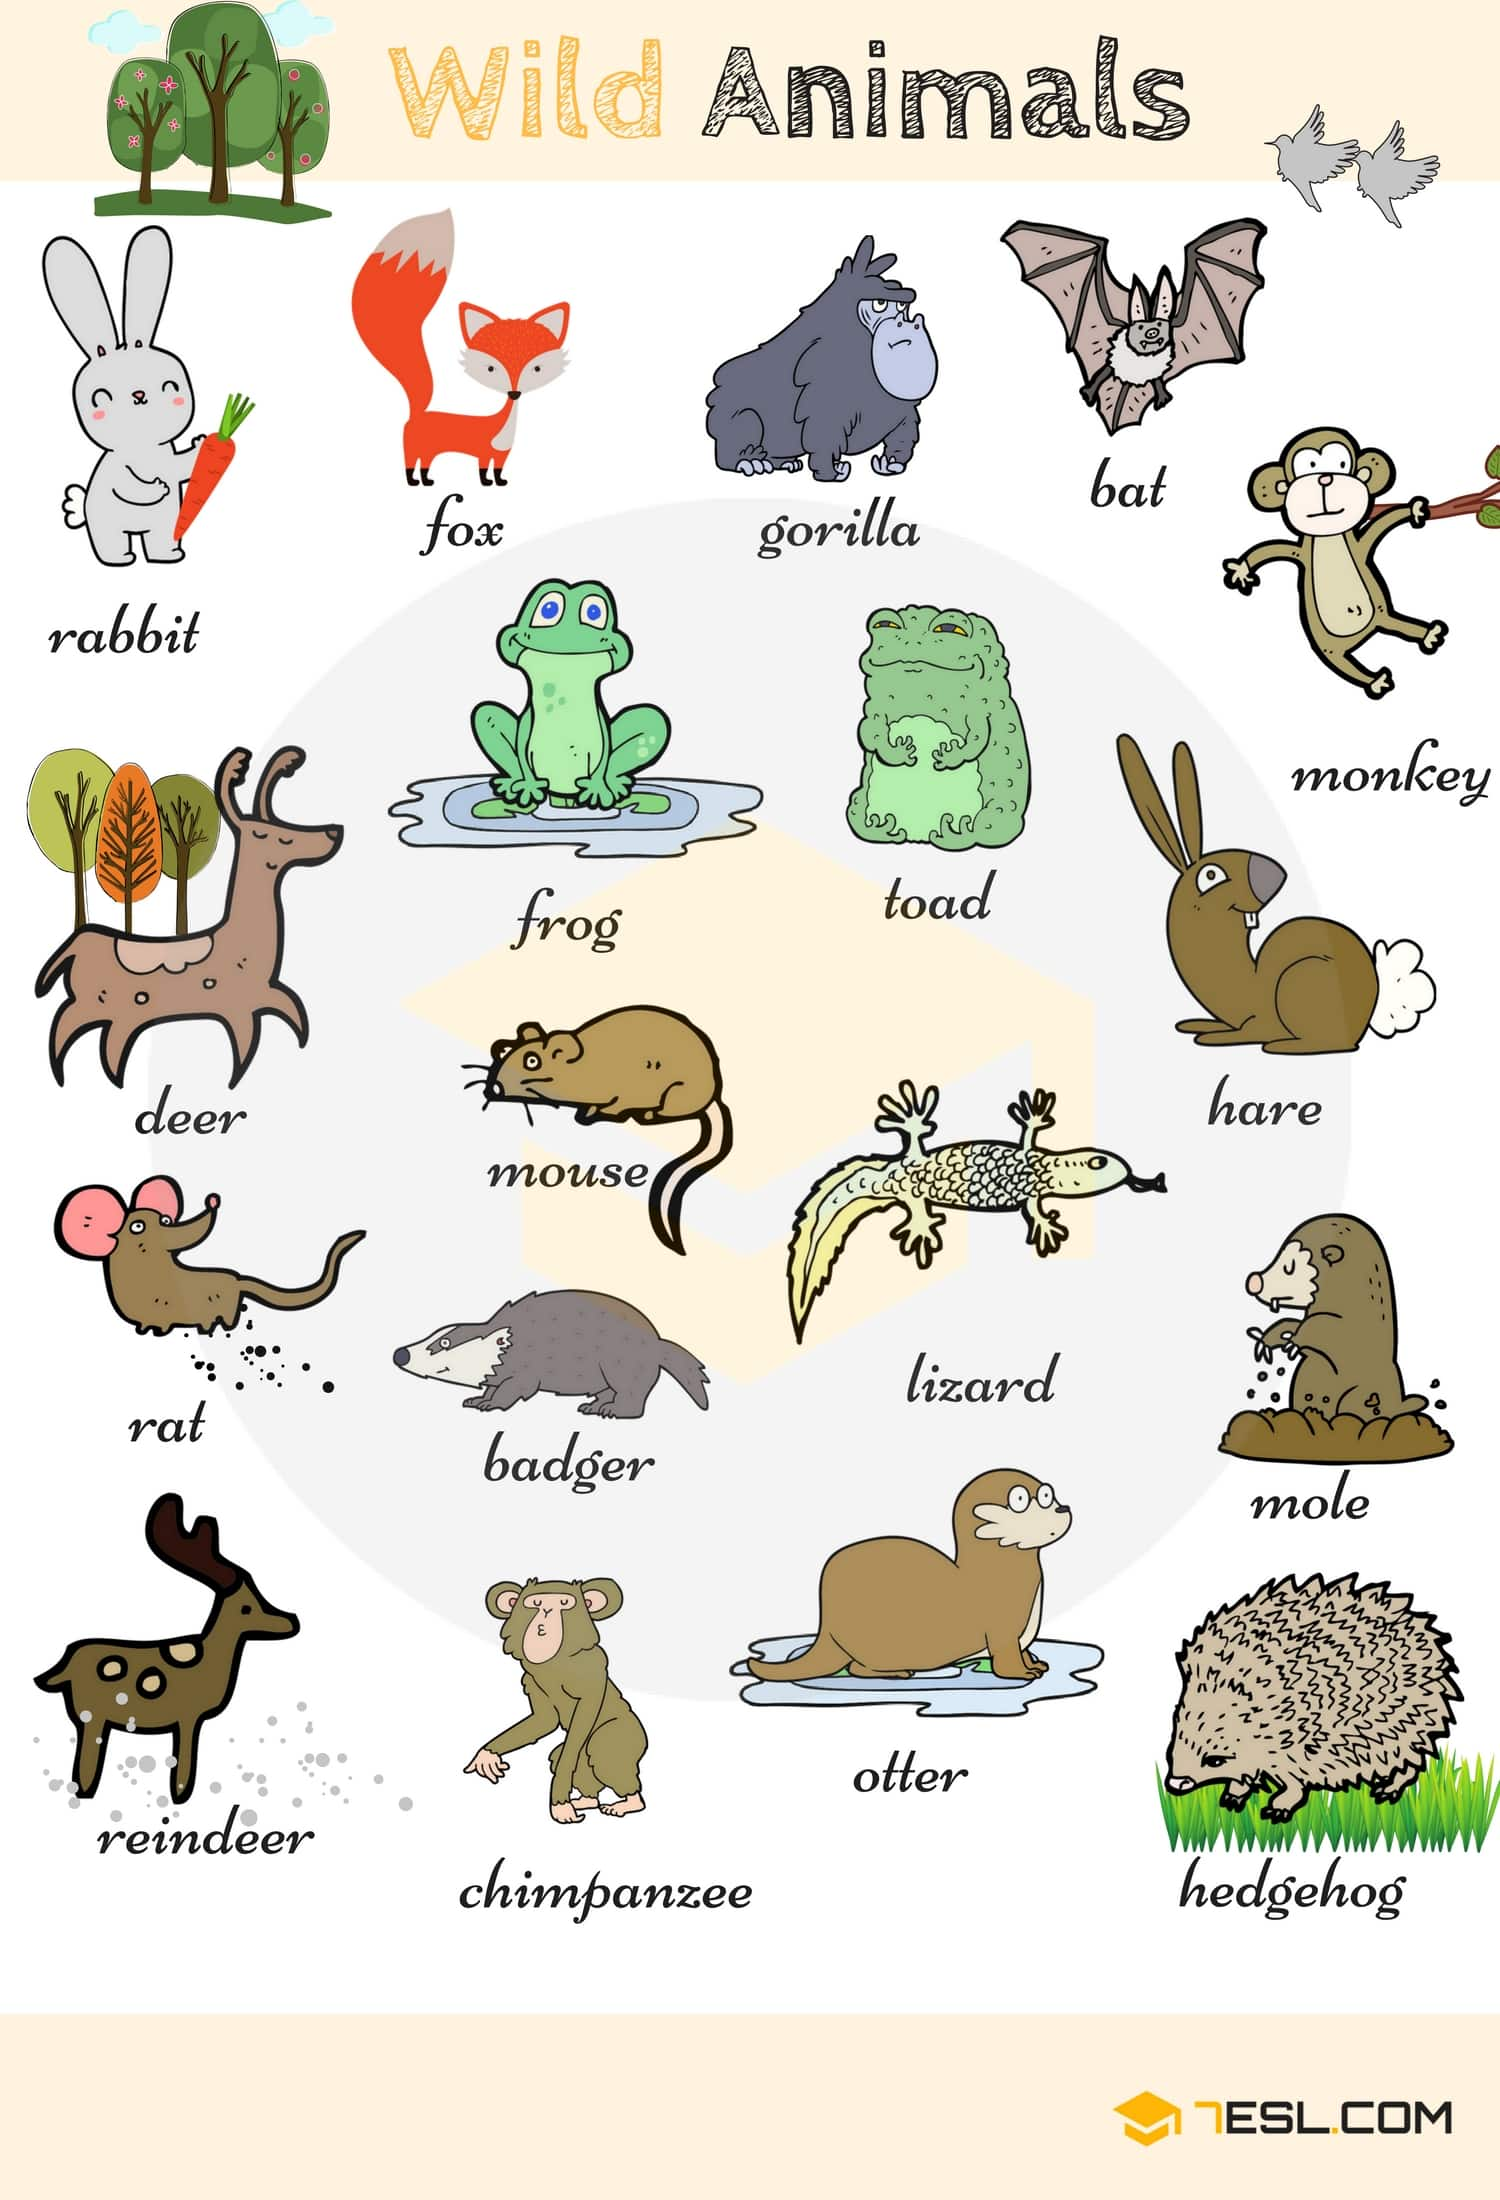 Learn Animal Names in English 5